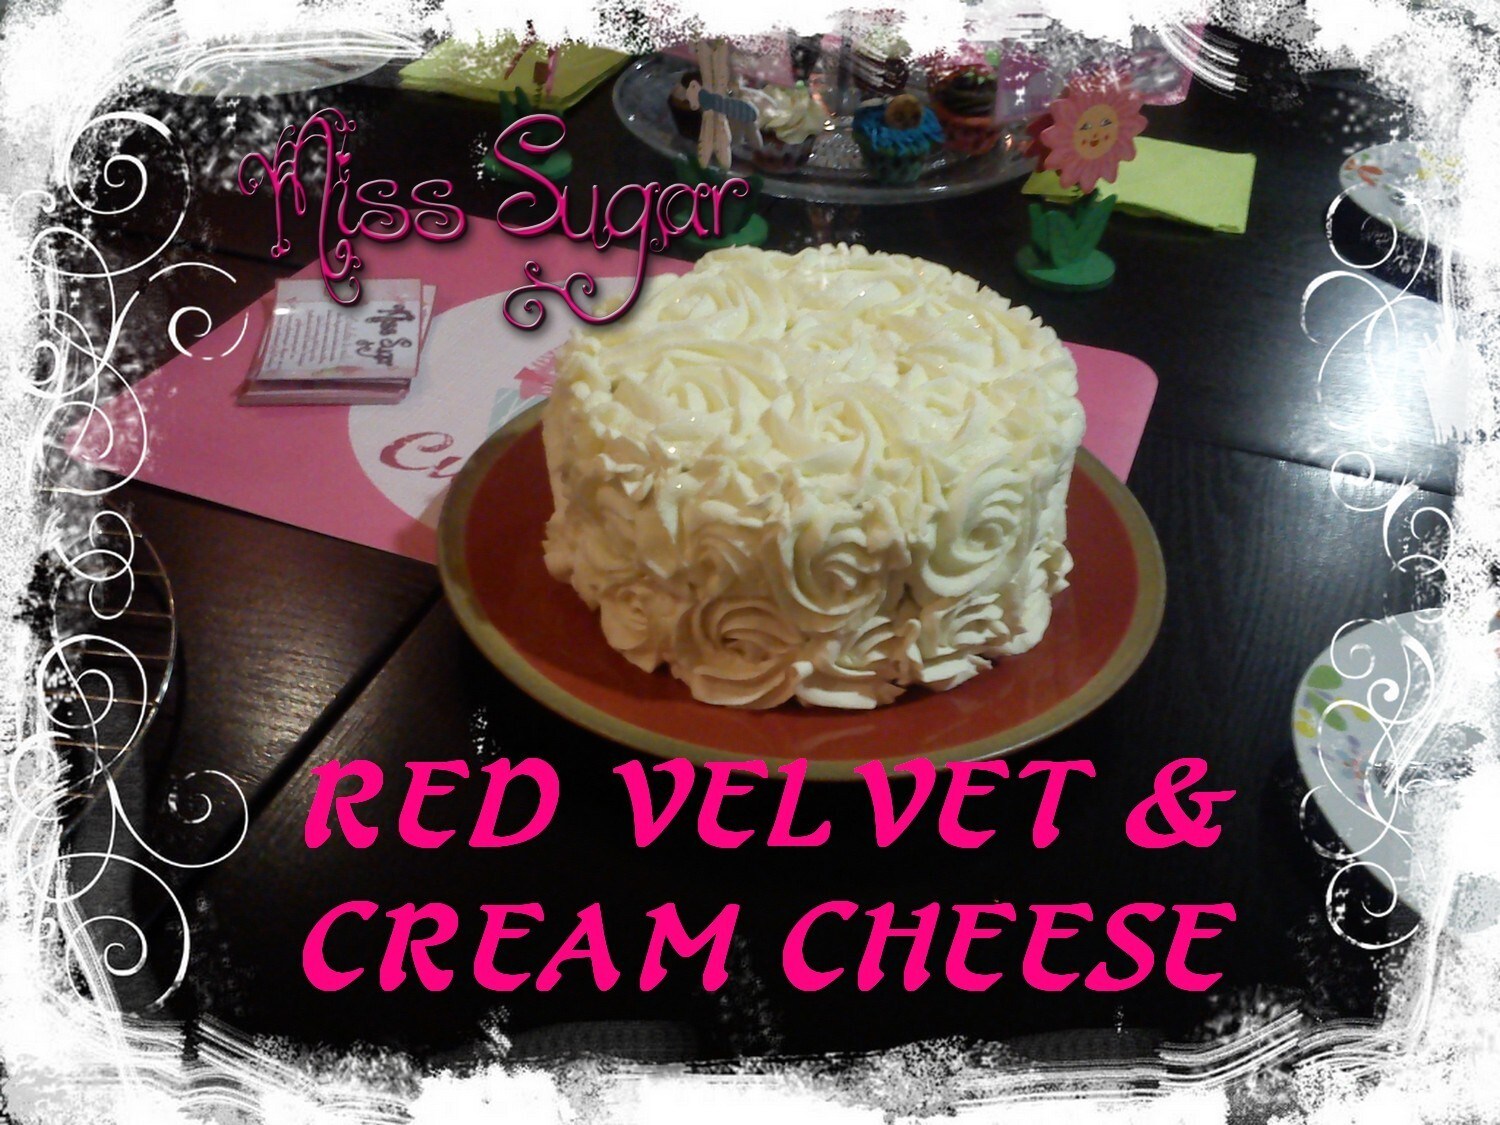 RED VELVET CAKE CON CREAM CHEESE FROSTING RECETA PERFECTA!!!